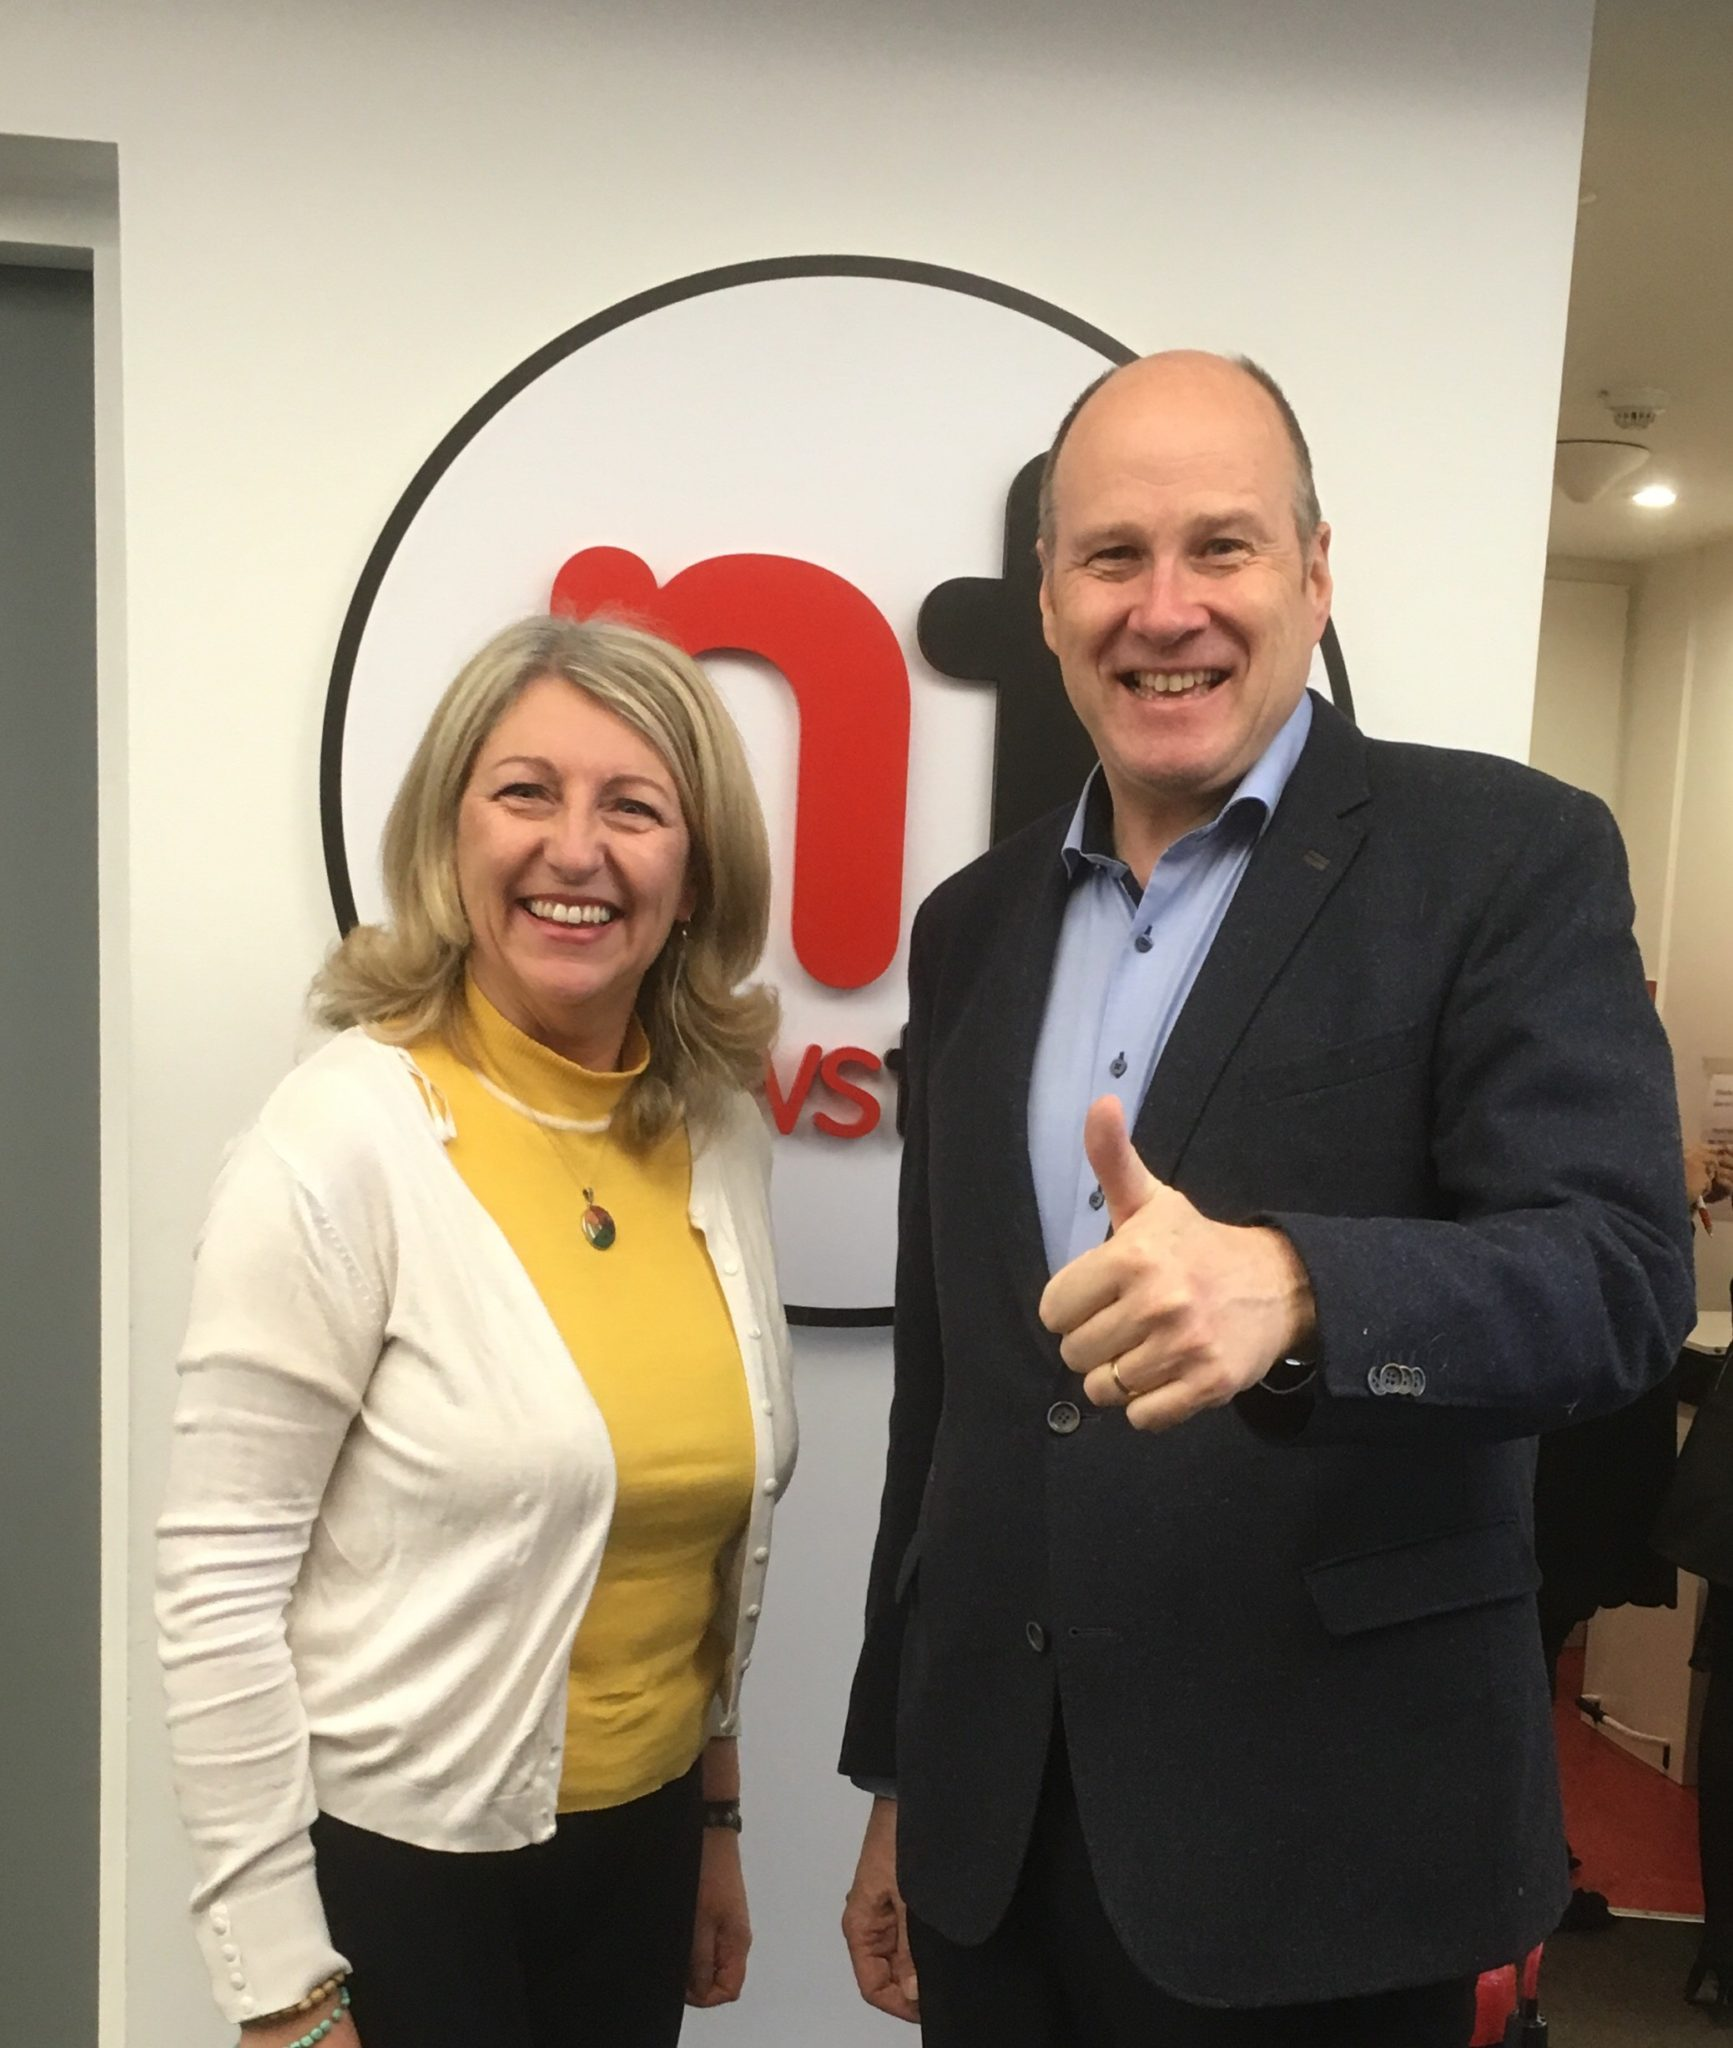 michelle and ivan Yates at The Newstalk Studio